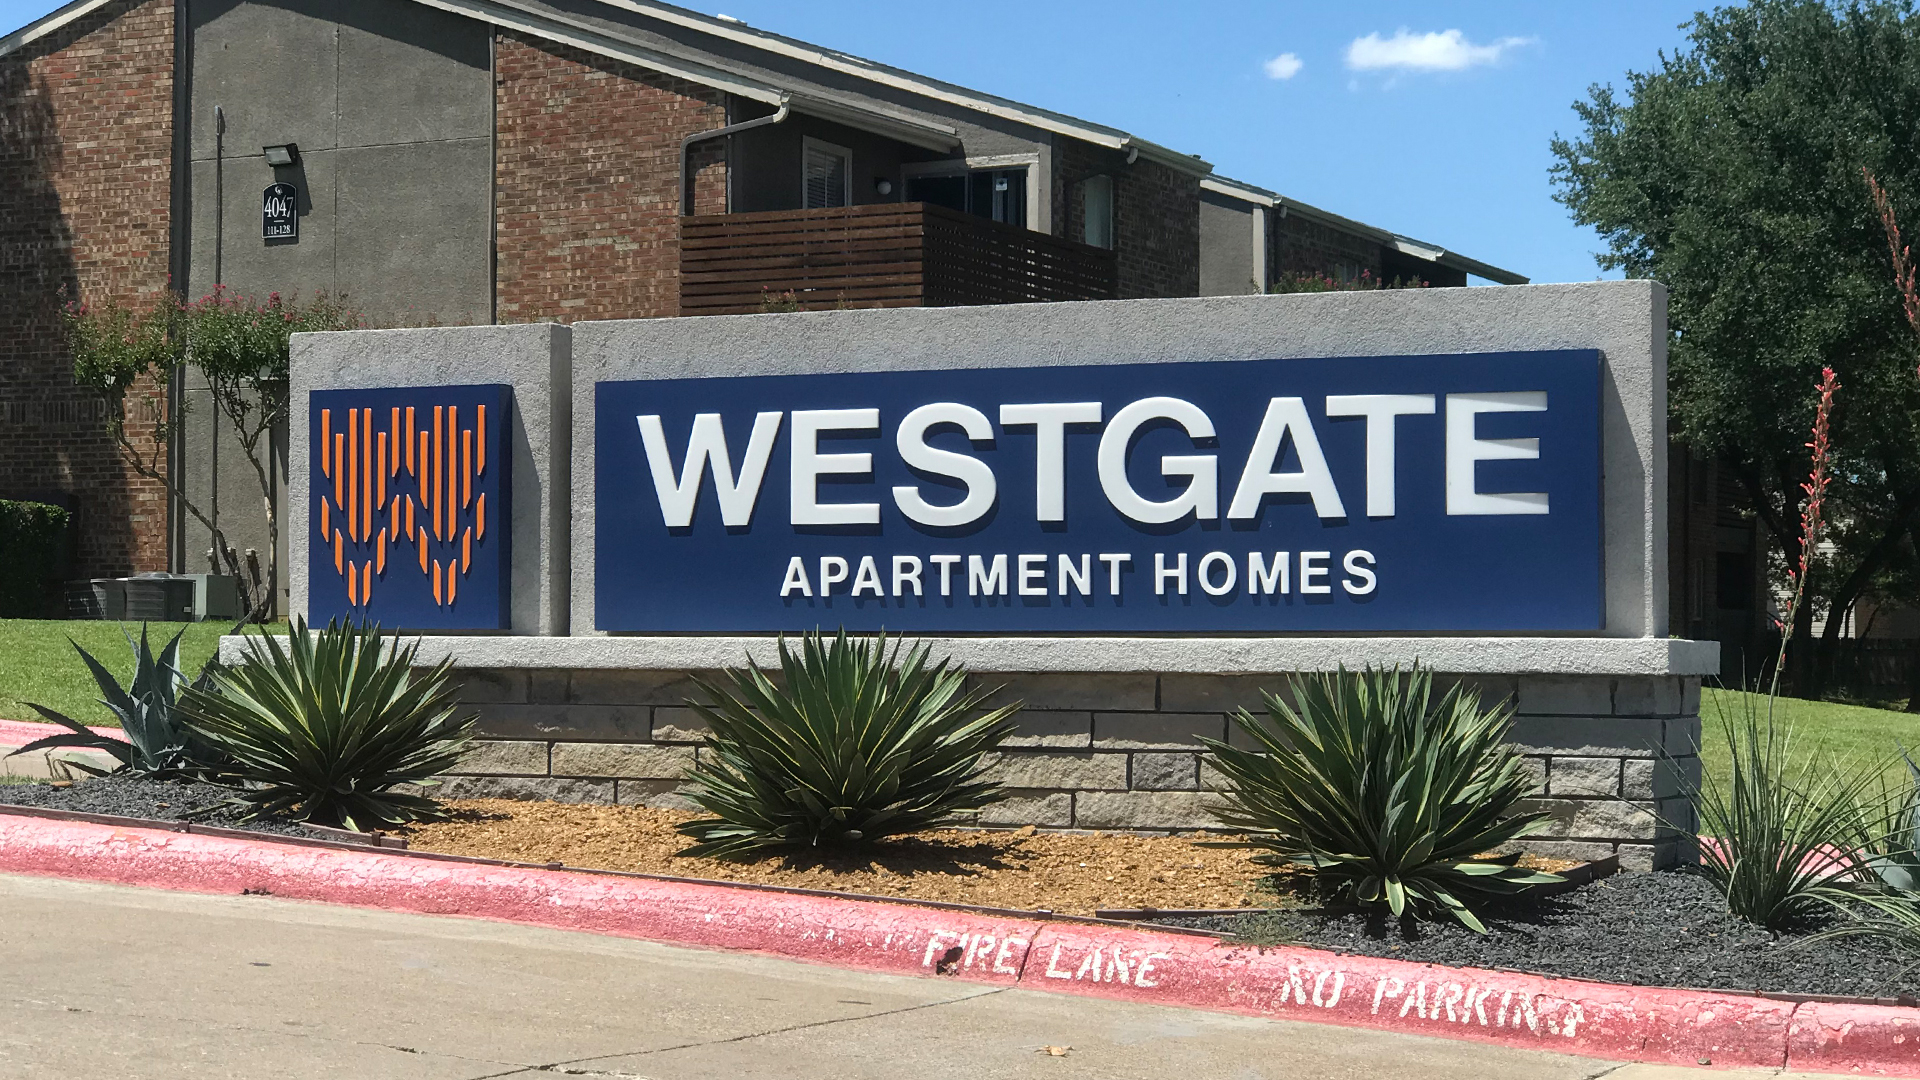 Westgate Apartments